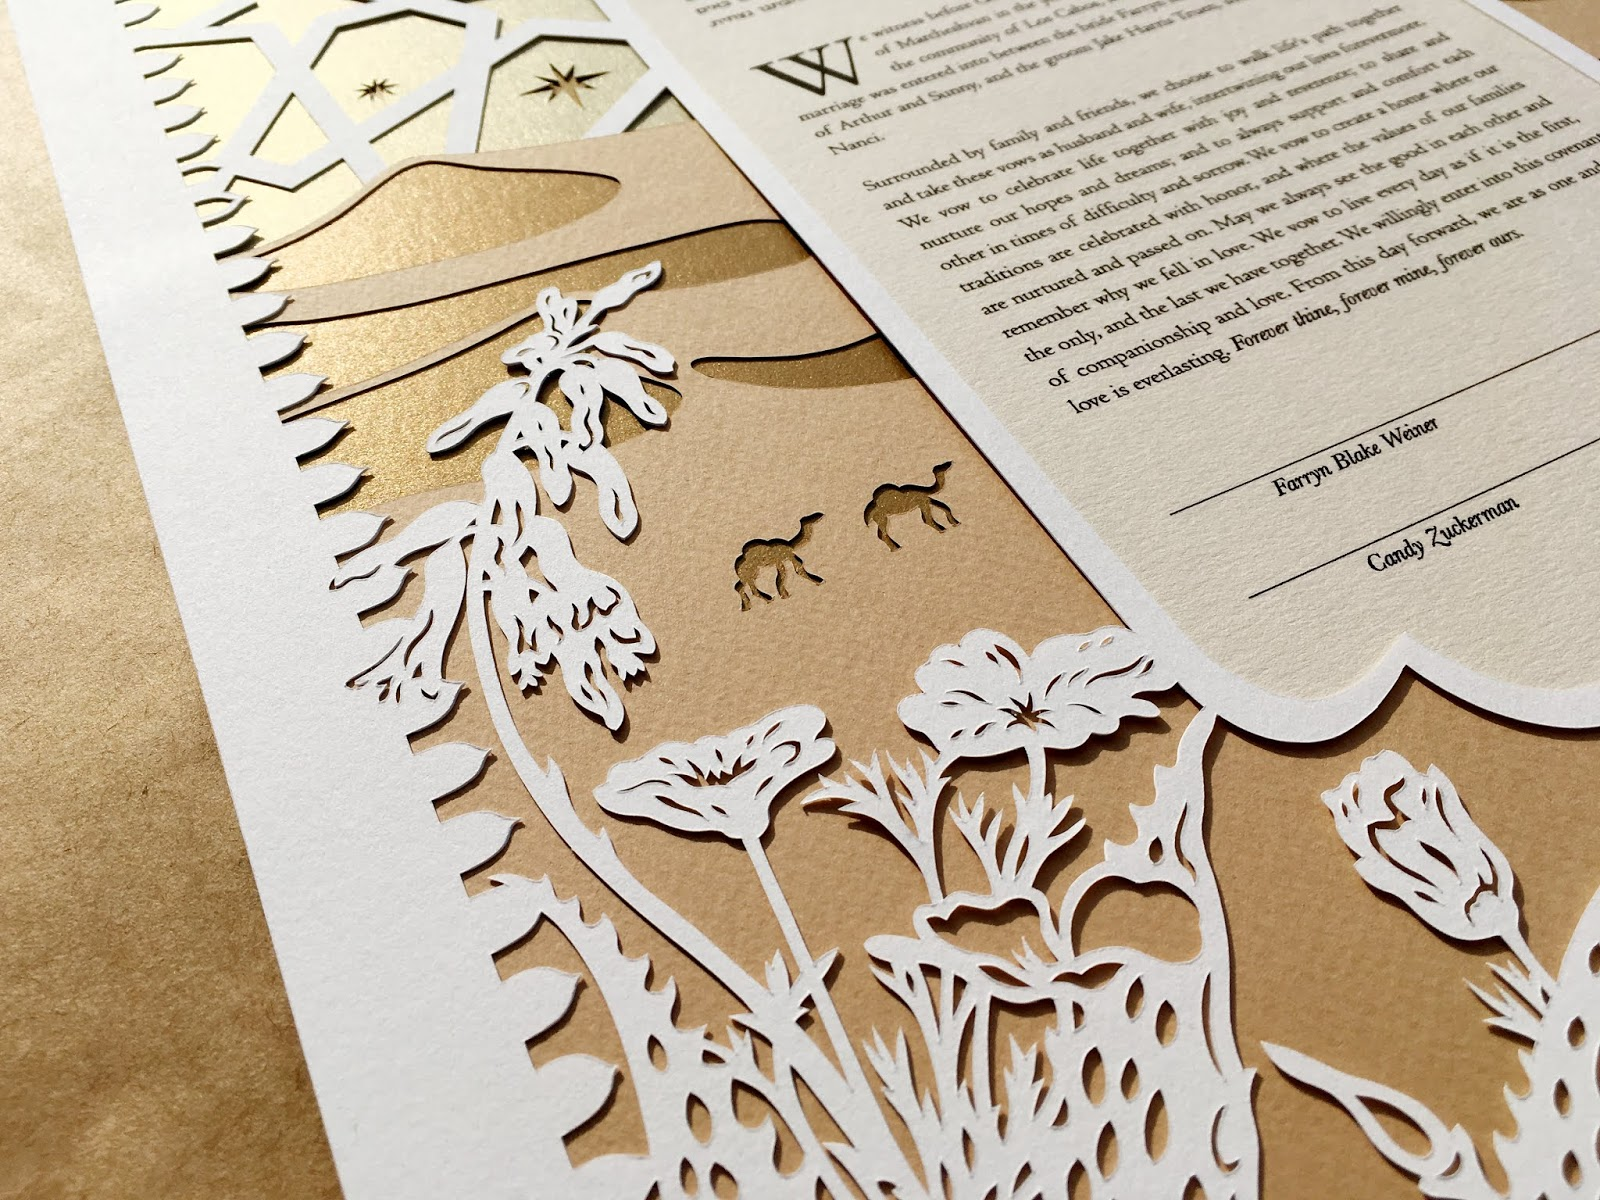 Golds & Browns reflect the sun hitting the sandy papercut ketubah